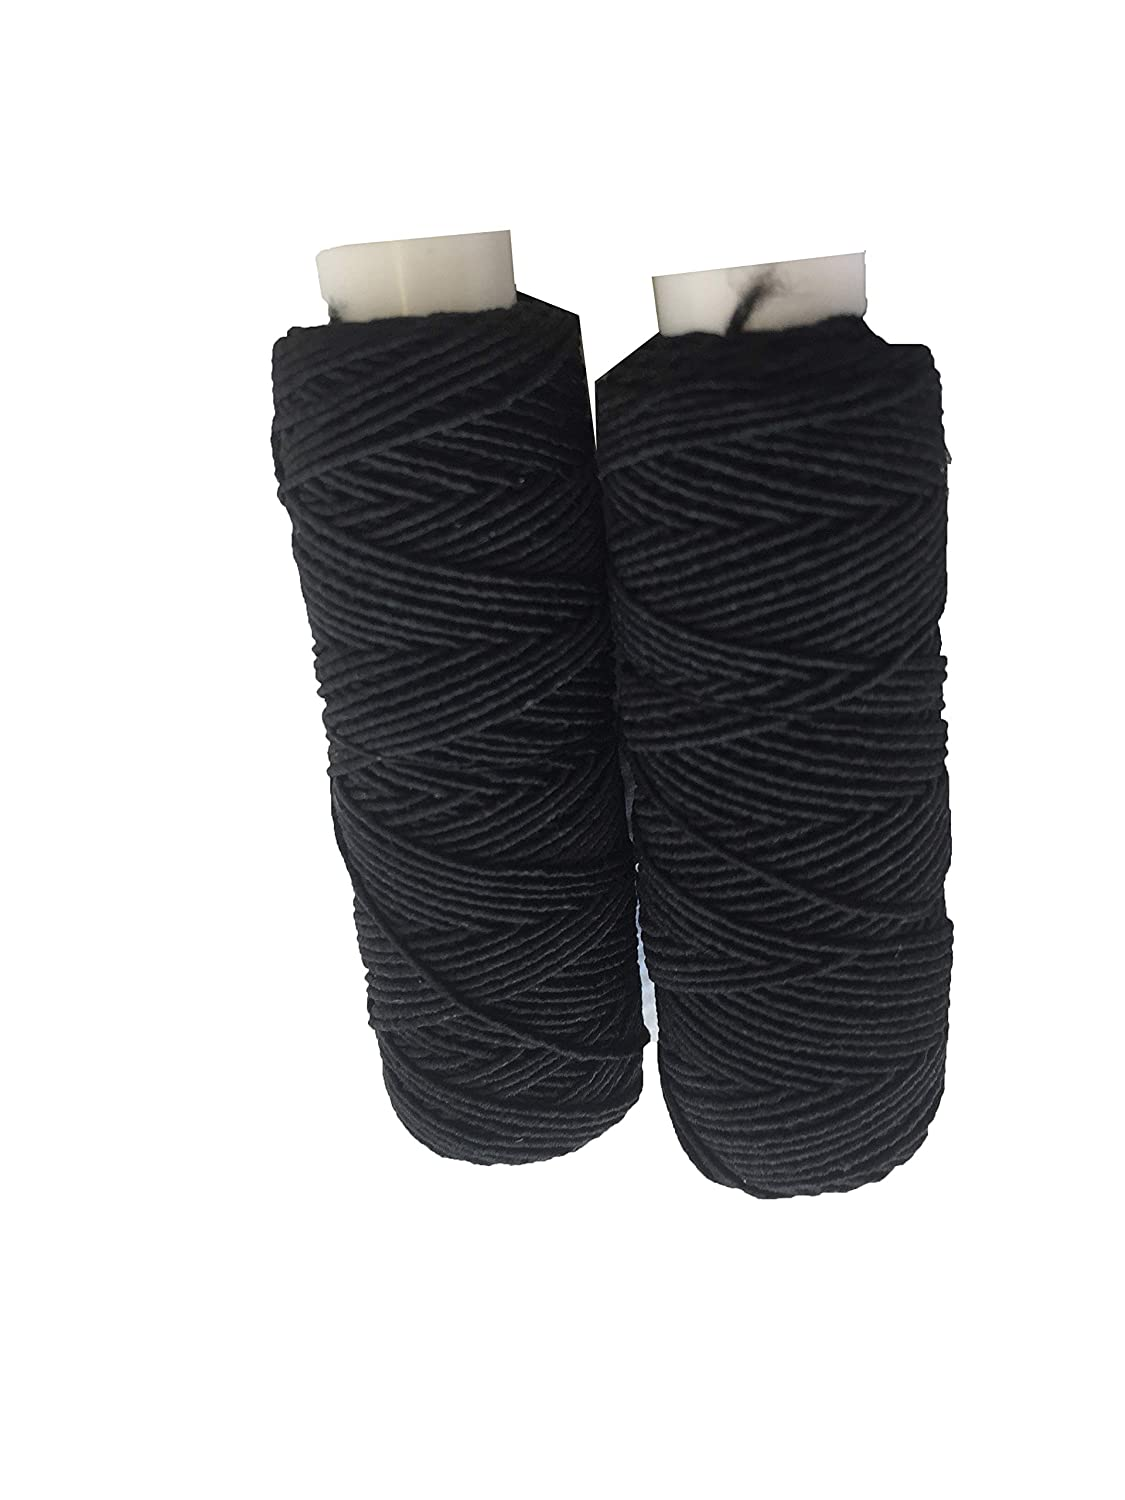 Shirring Shearing Elastic Thread 20 METRE SPOOLS Pack of 2 REELS Sewing Craft (Black & Air Force Blue) The Trimming Department